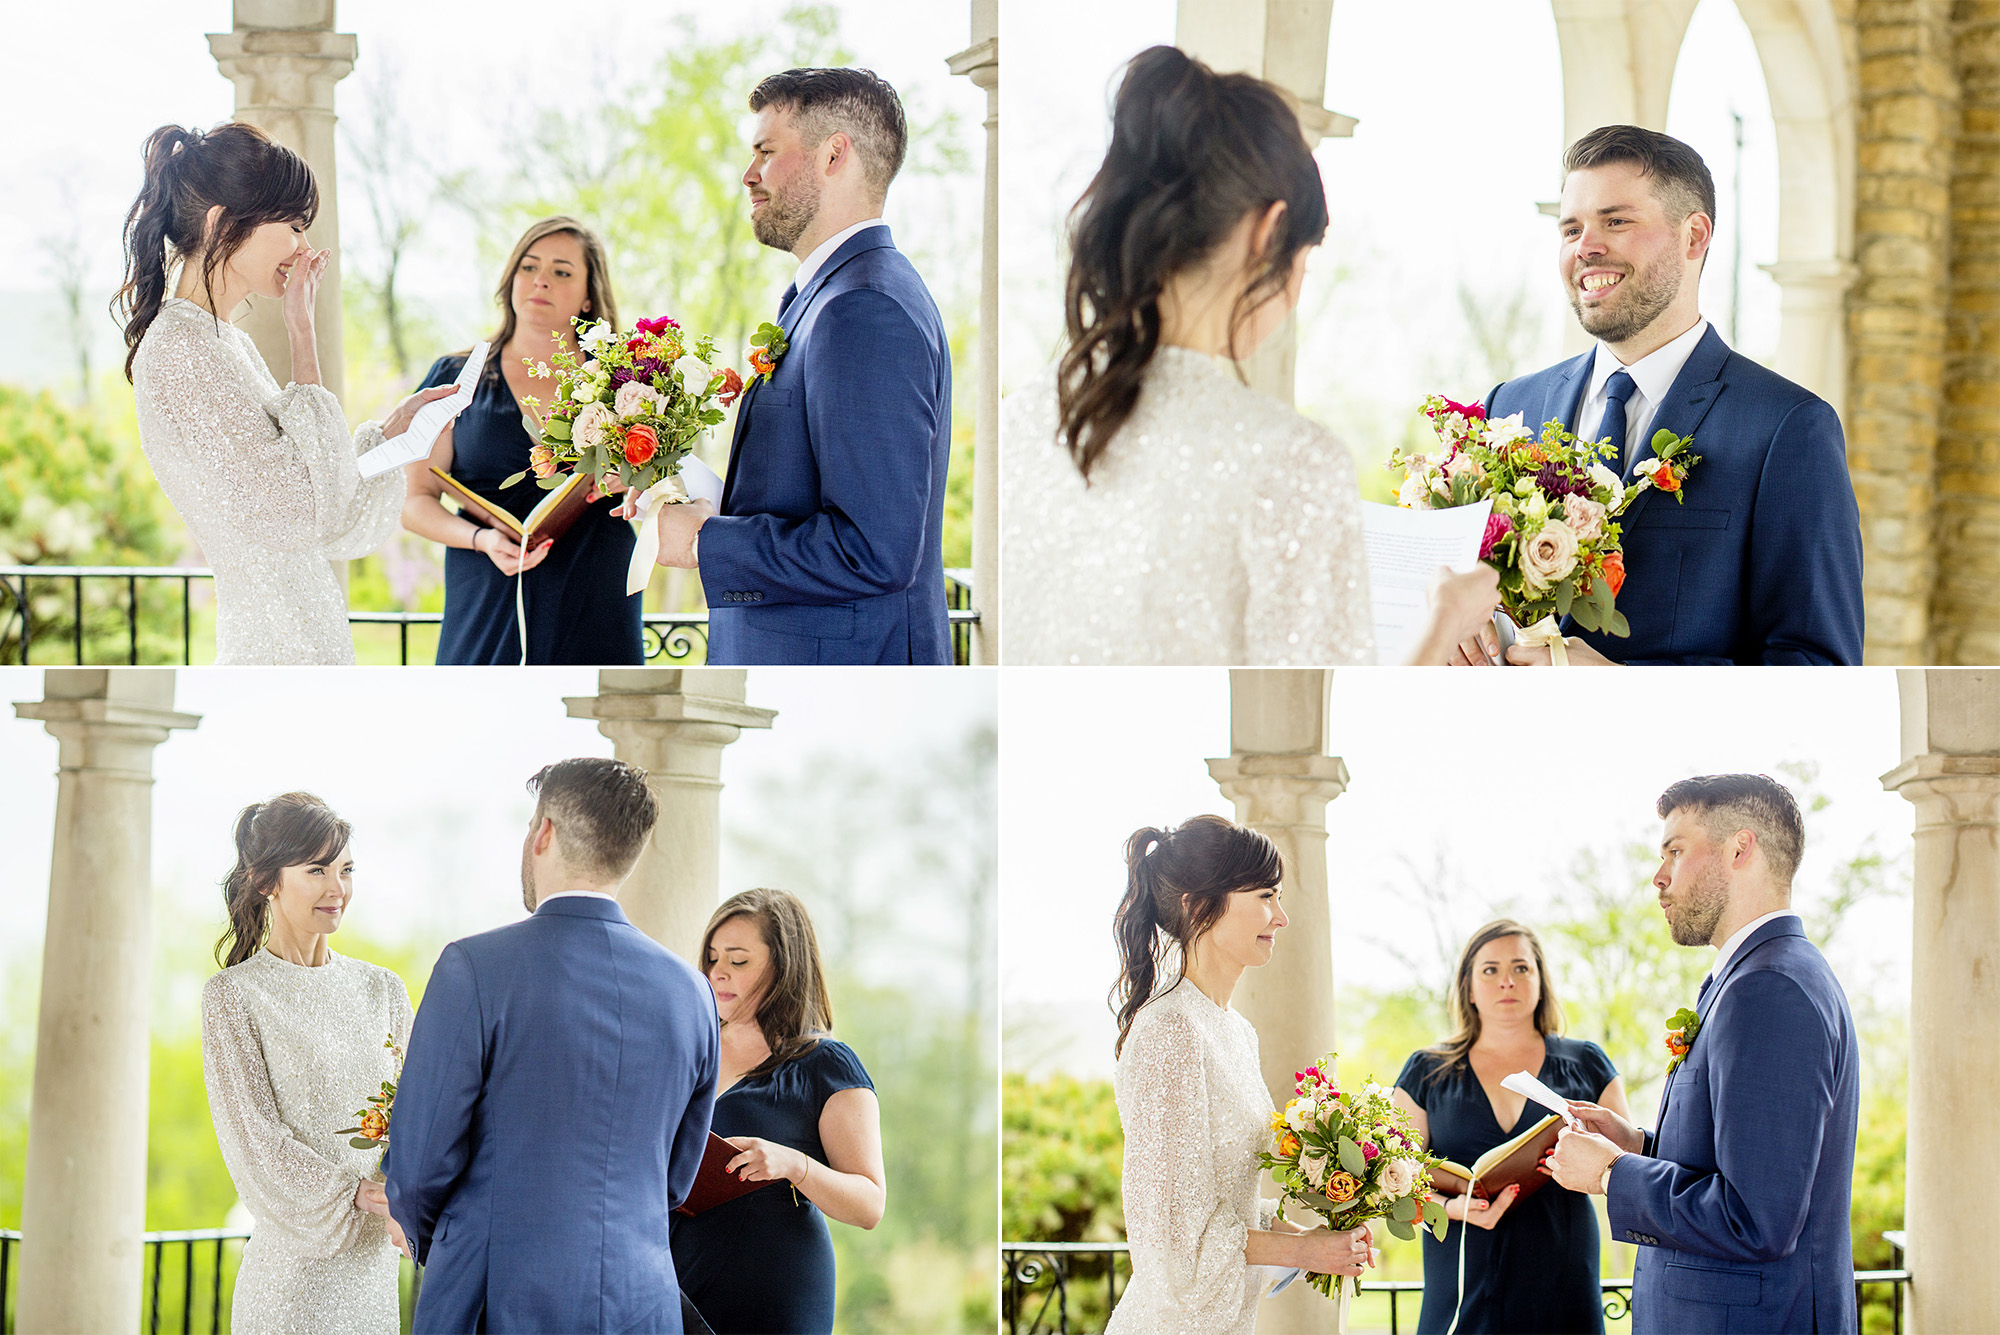 Seriously_Sabrina_Photography_Cincinnati_Ohio_Alms_Park_Elopement_Lauren_Aaron_23.jpg